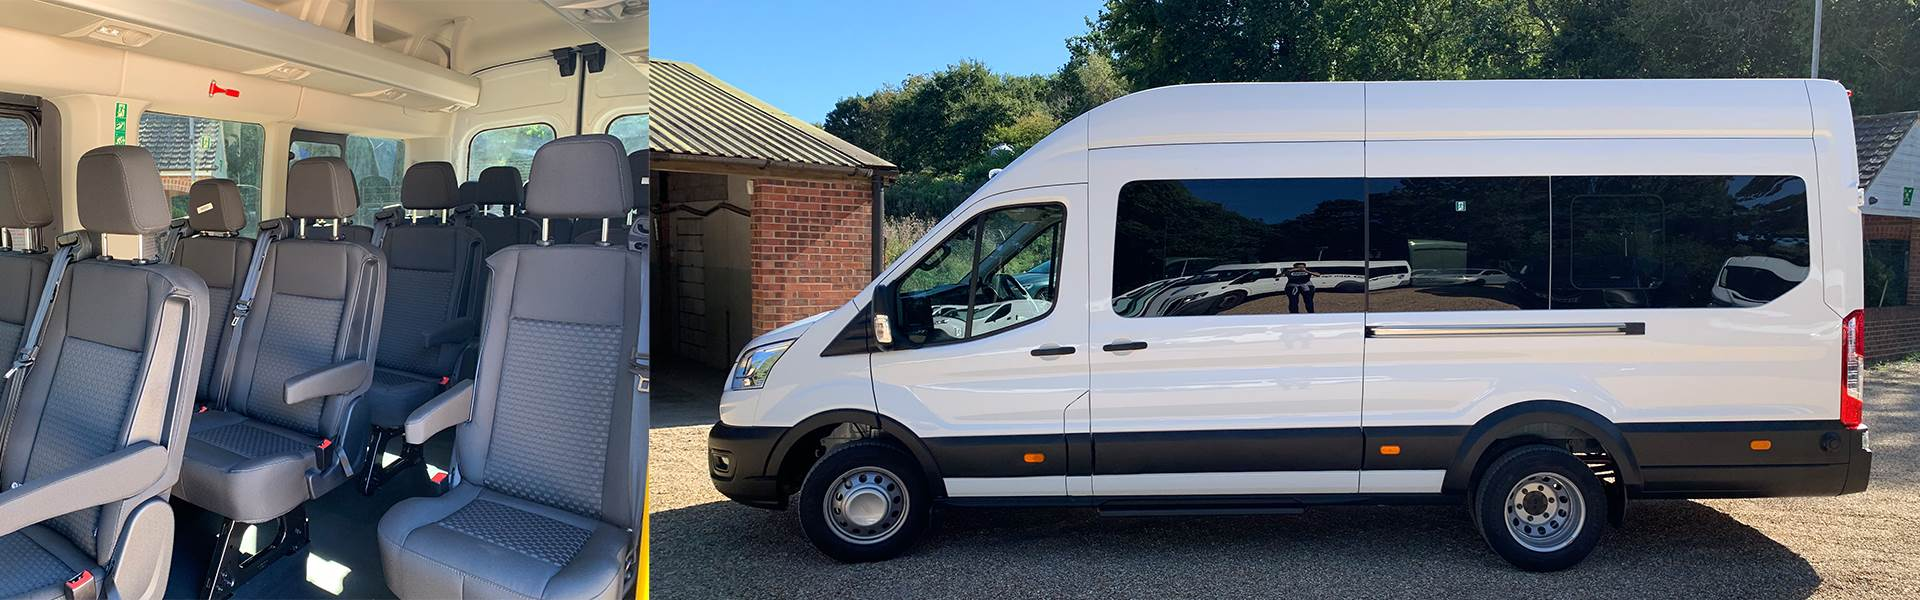 Ford Transit Accessible Minibus